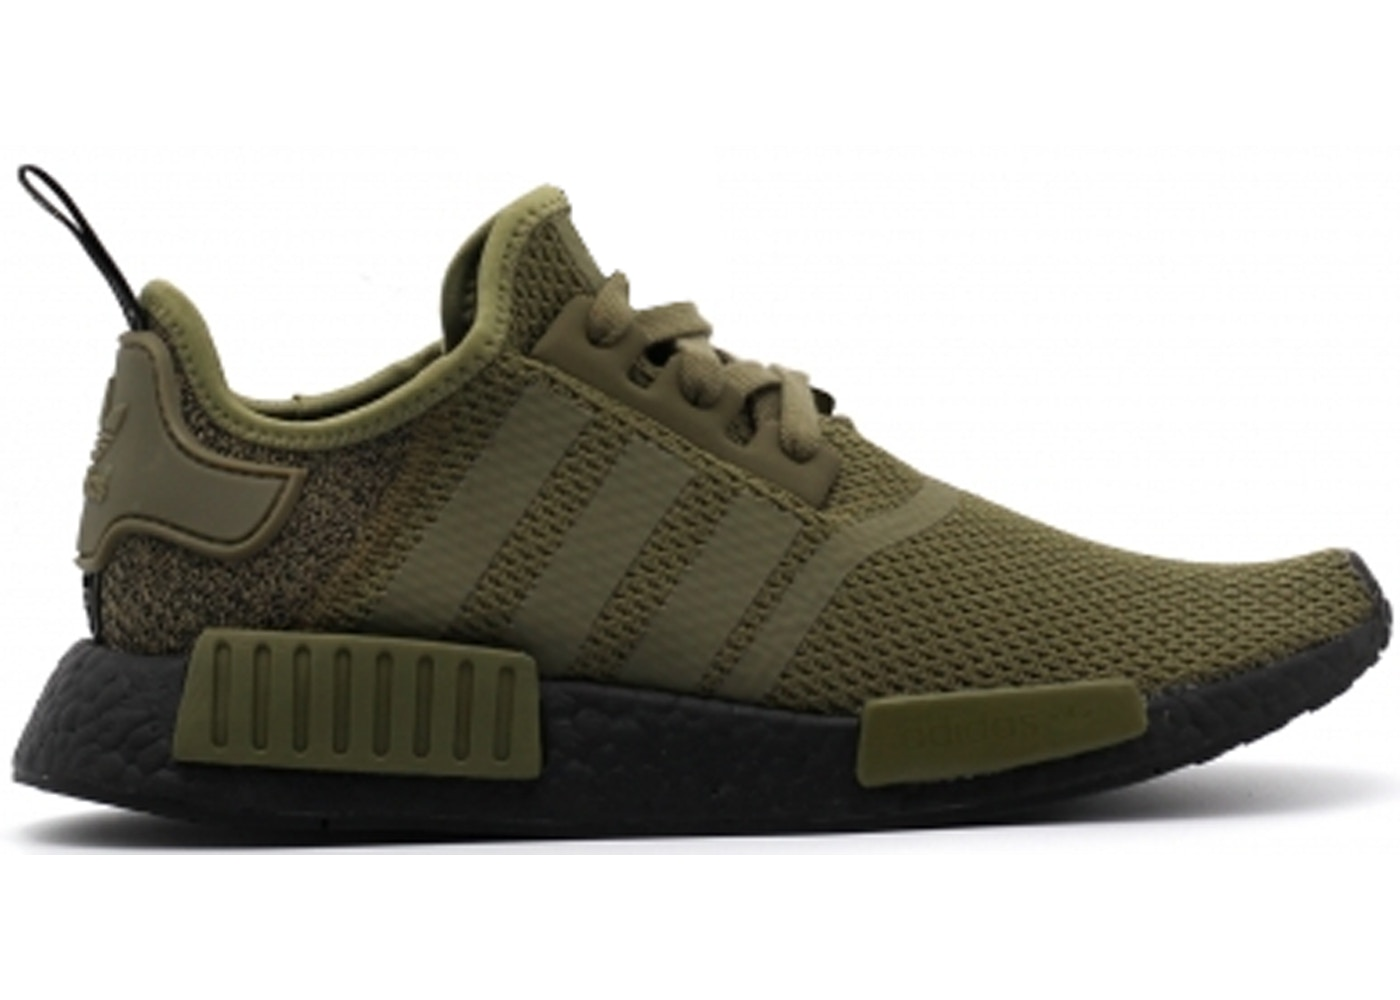 Mens Adidas Originals NMD R1 Primeknit Running Shoes Olive Green White NIKE ND006930